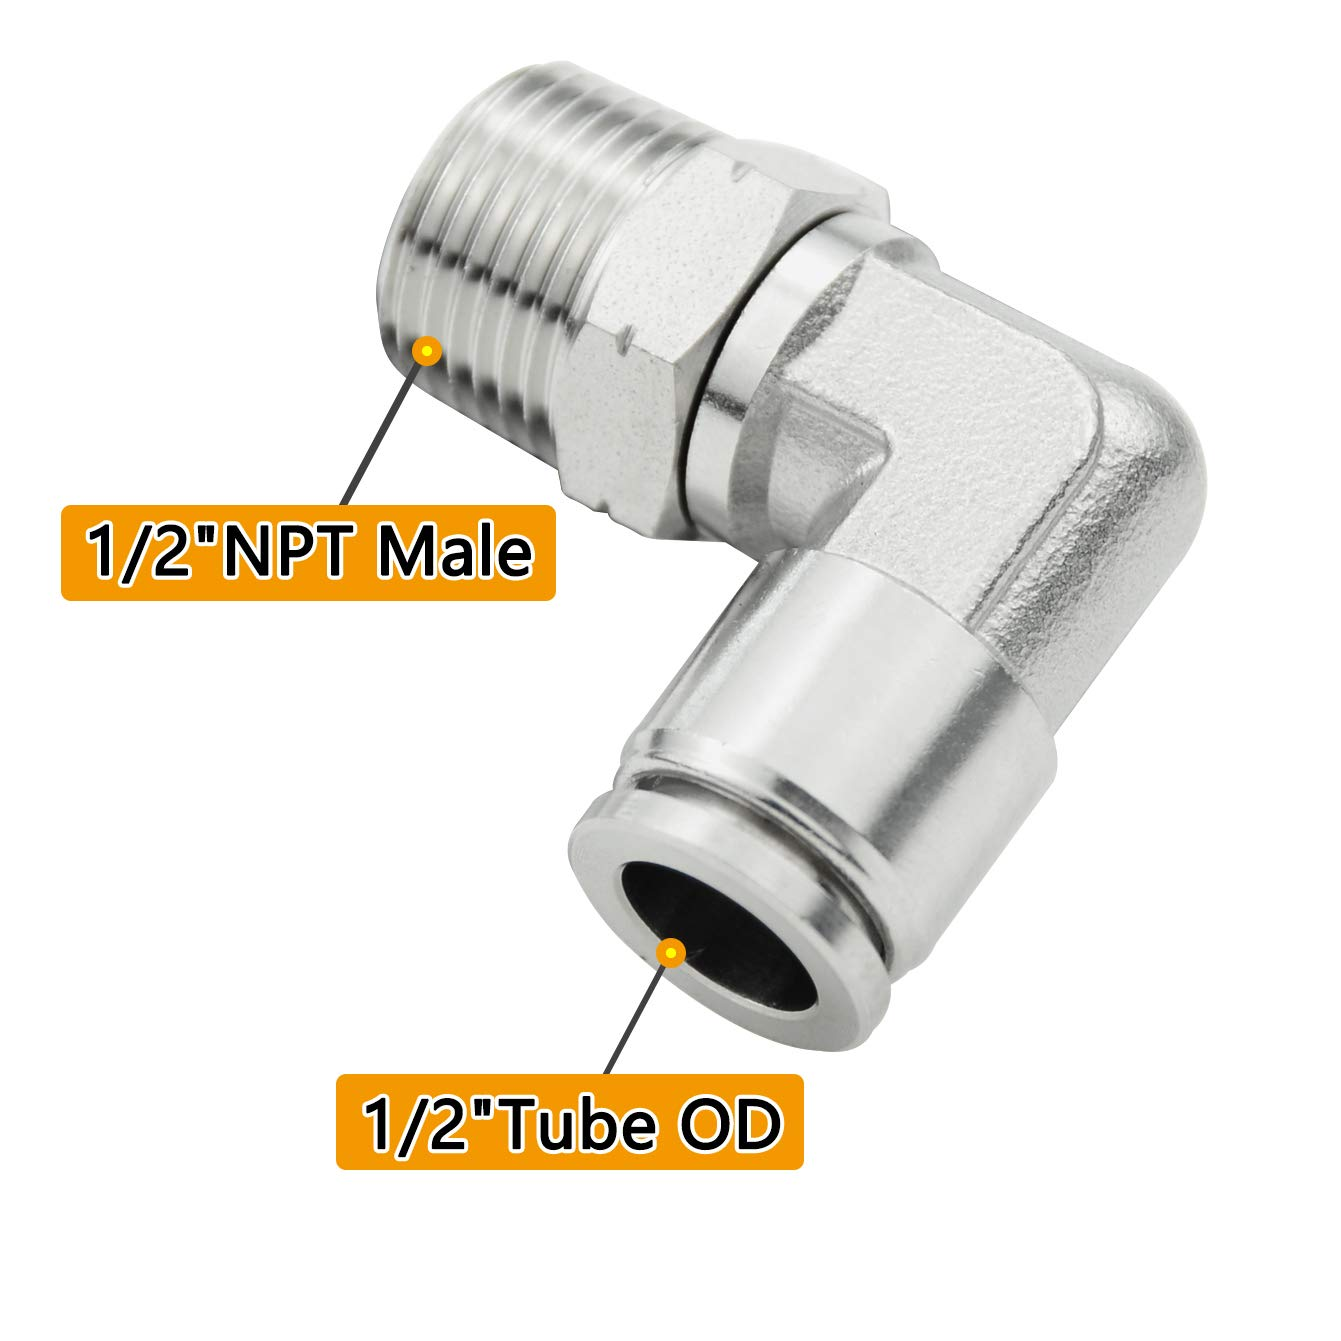 Beduan Push to Connect Fitting Elbow 3//8 Tube OD x 3//8 NPT Male 90 Degree Elbow Adapter 304 Stainless Steel Air Union Fitting